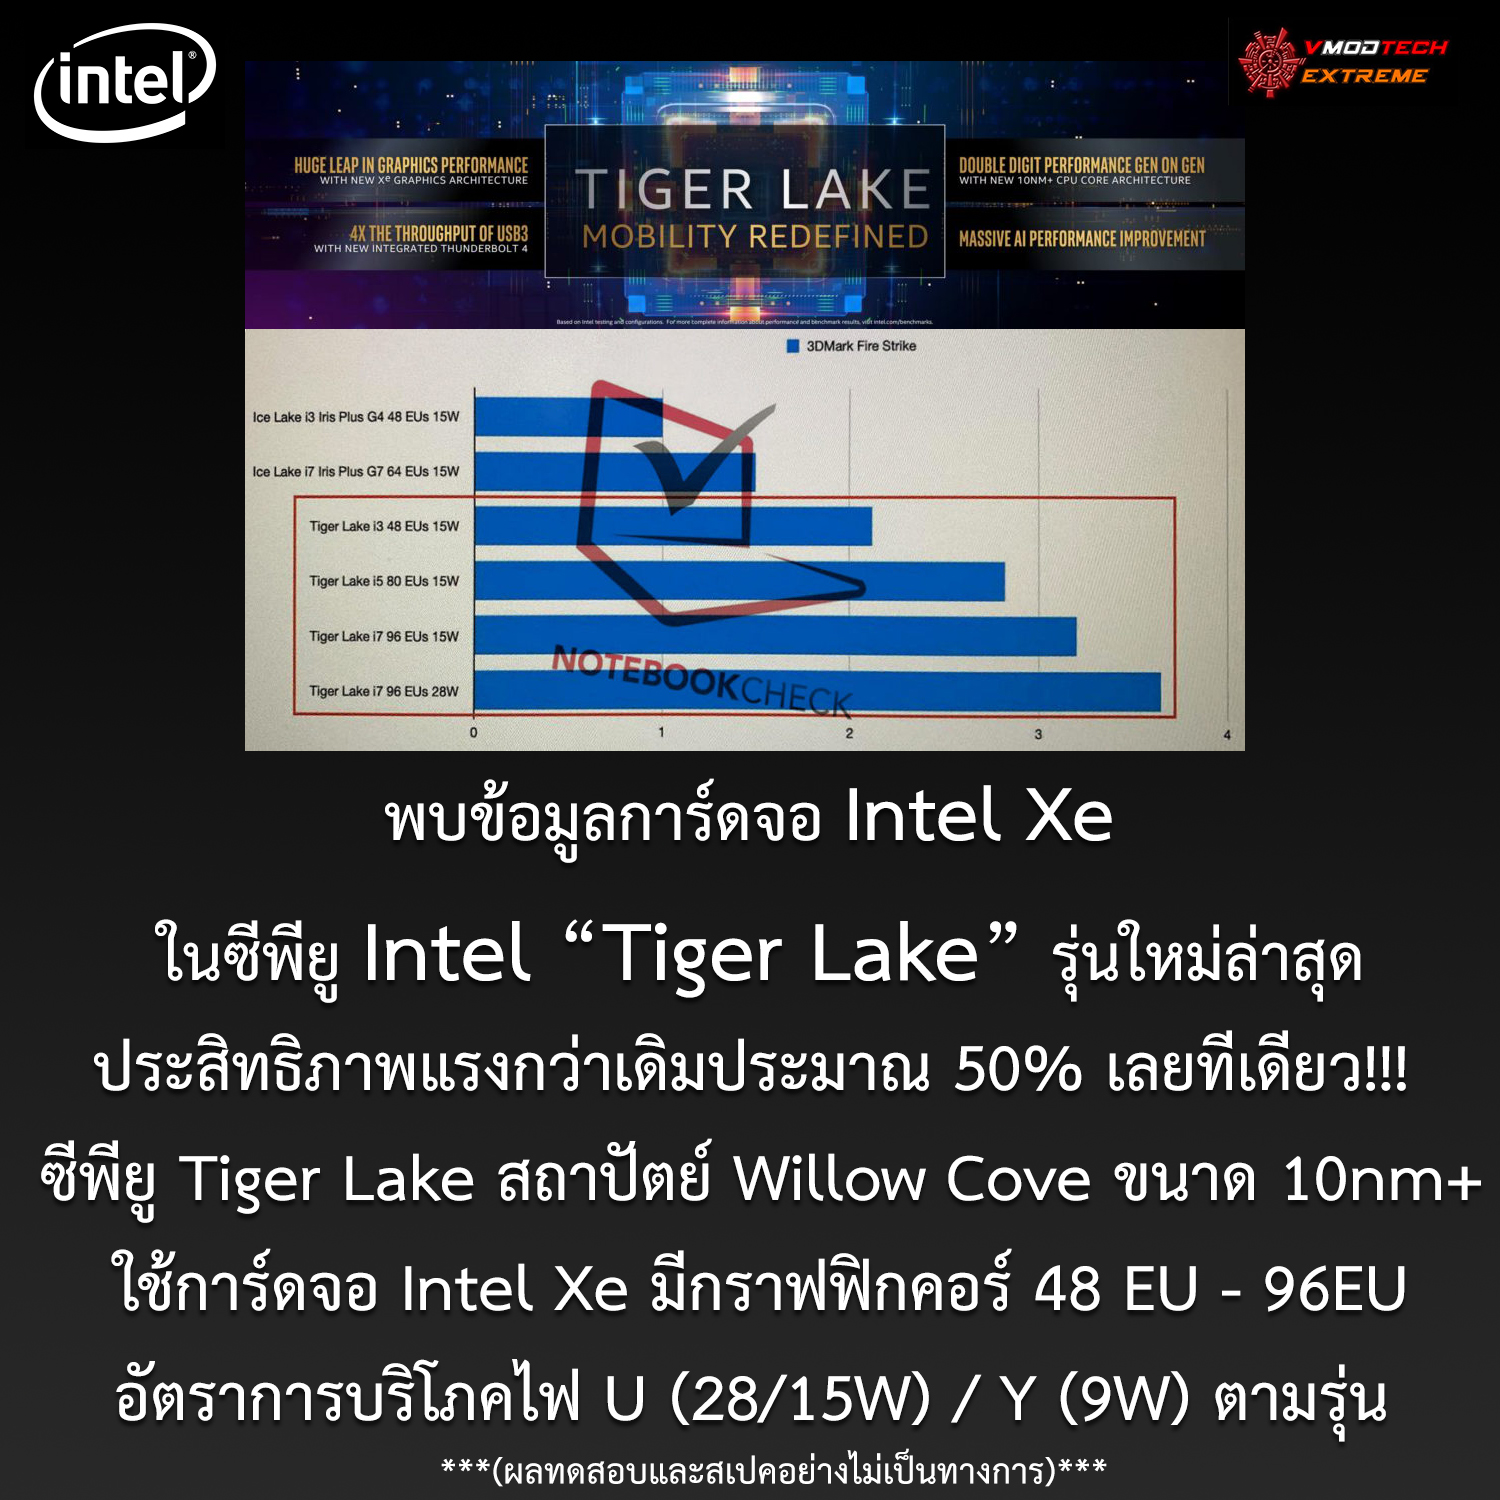 intel-tiger-lake-intel-xe-is-fast